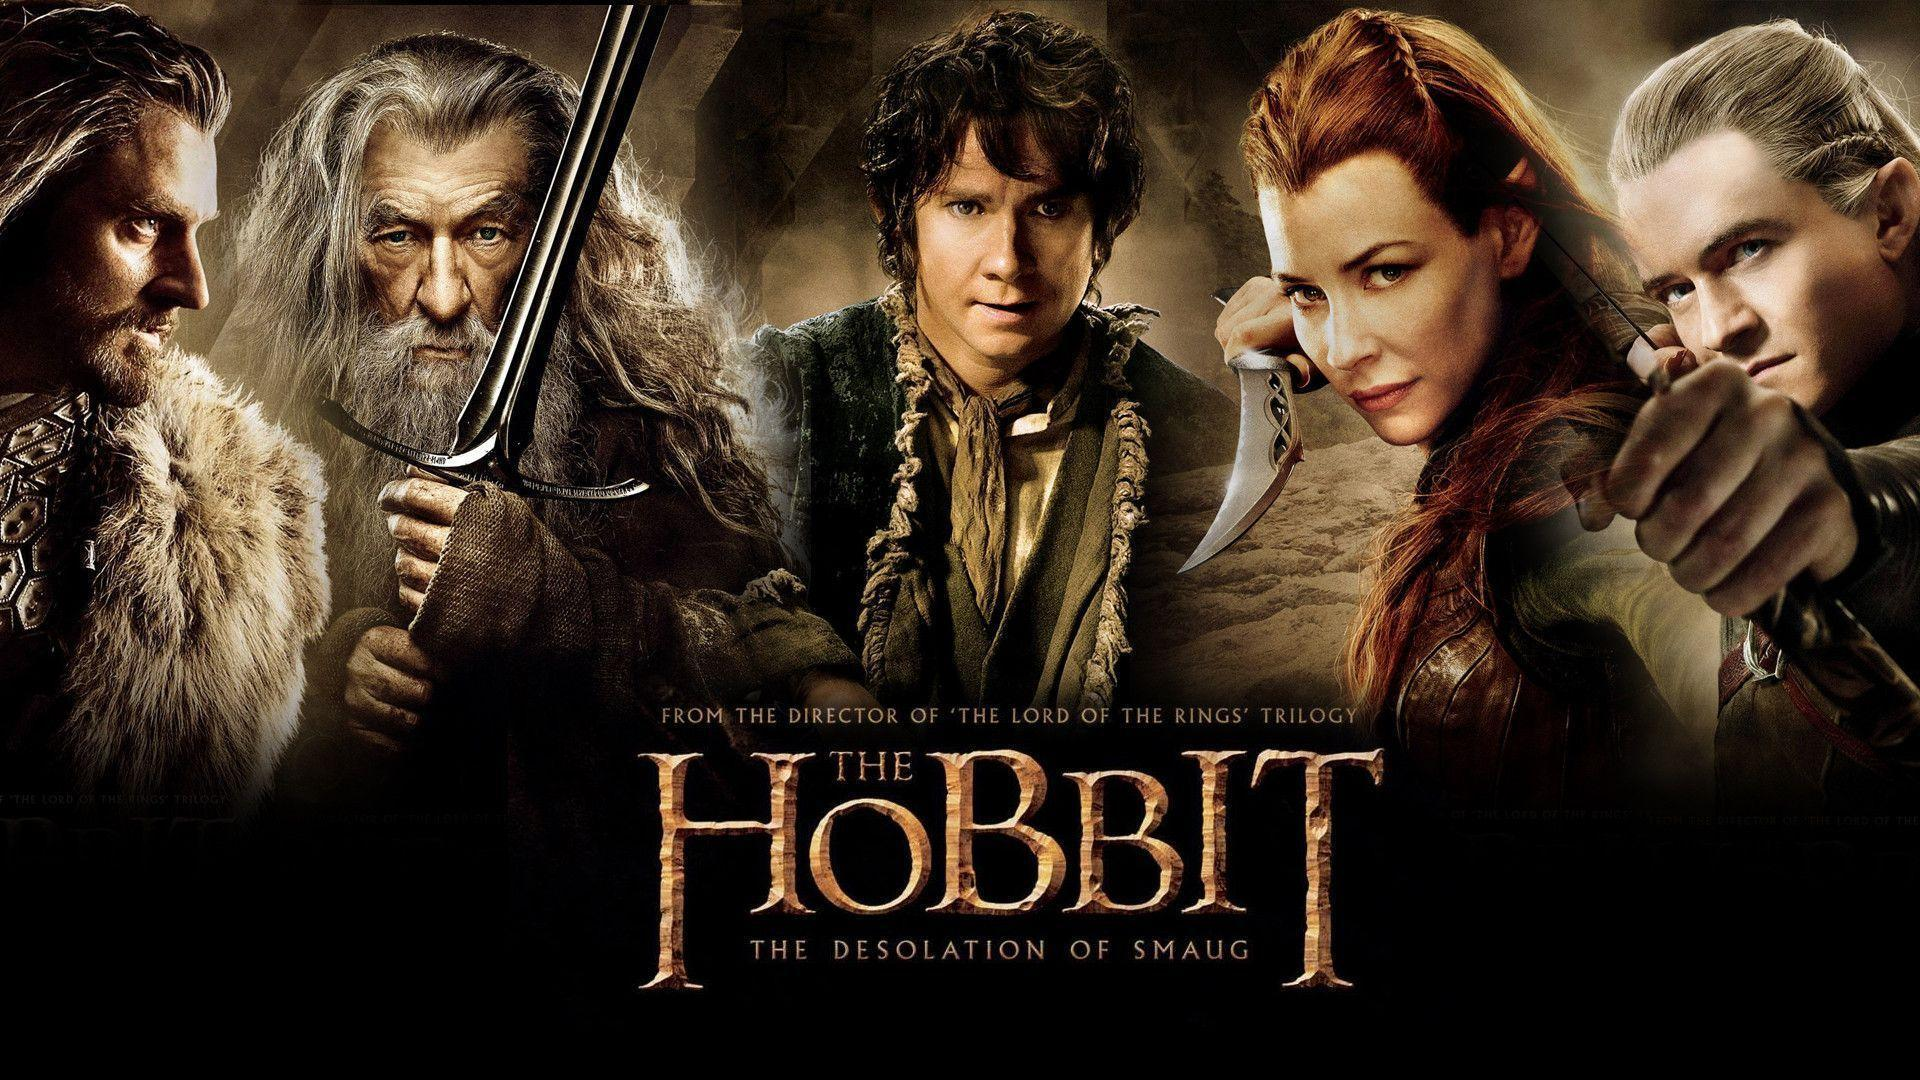 The Hobbit(The Desolation of Smaug) HD Wallpapers